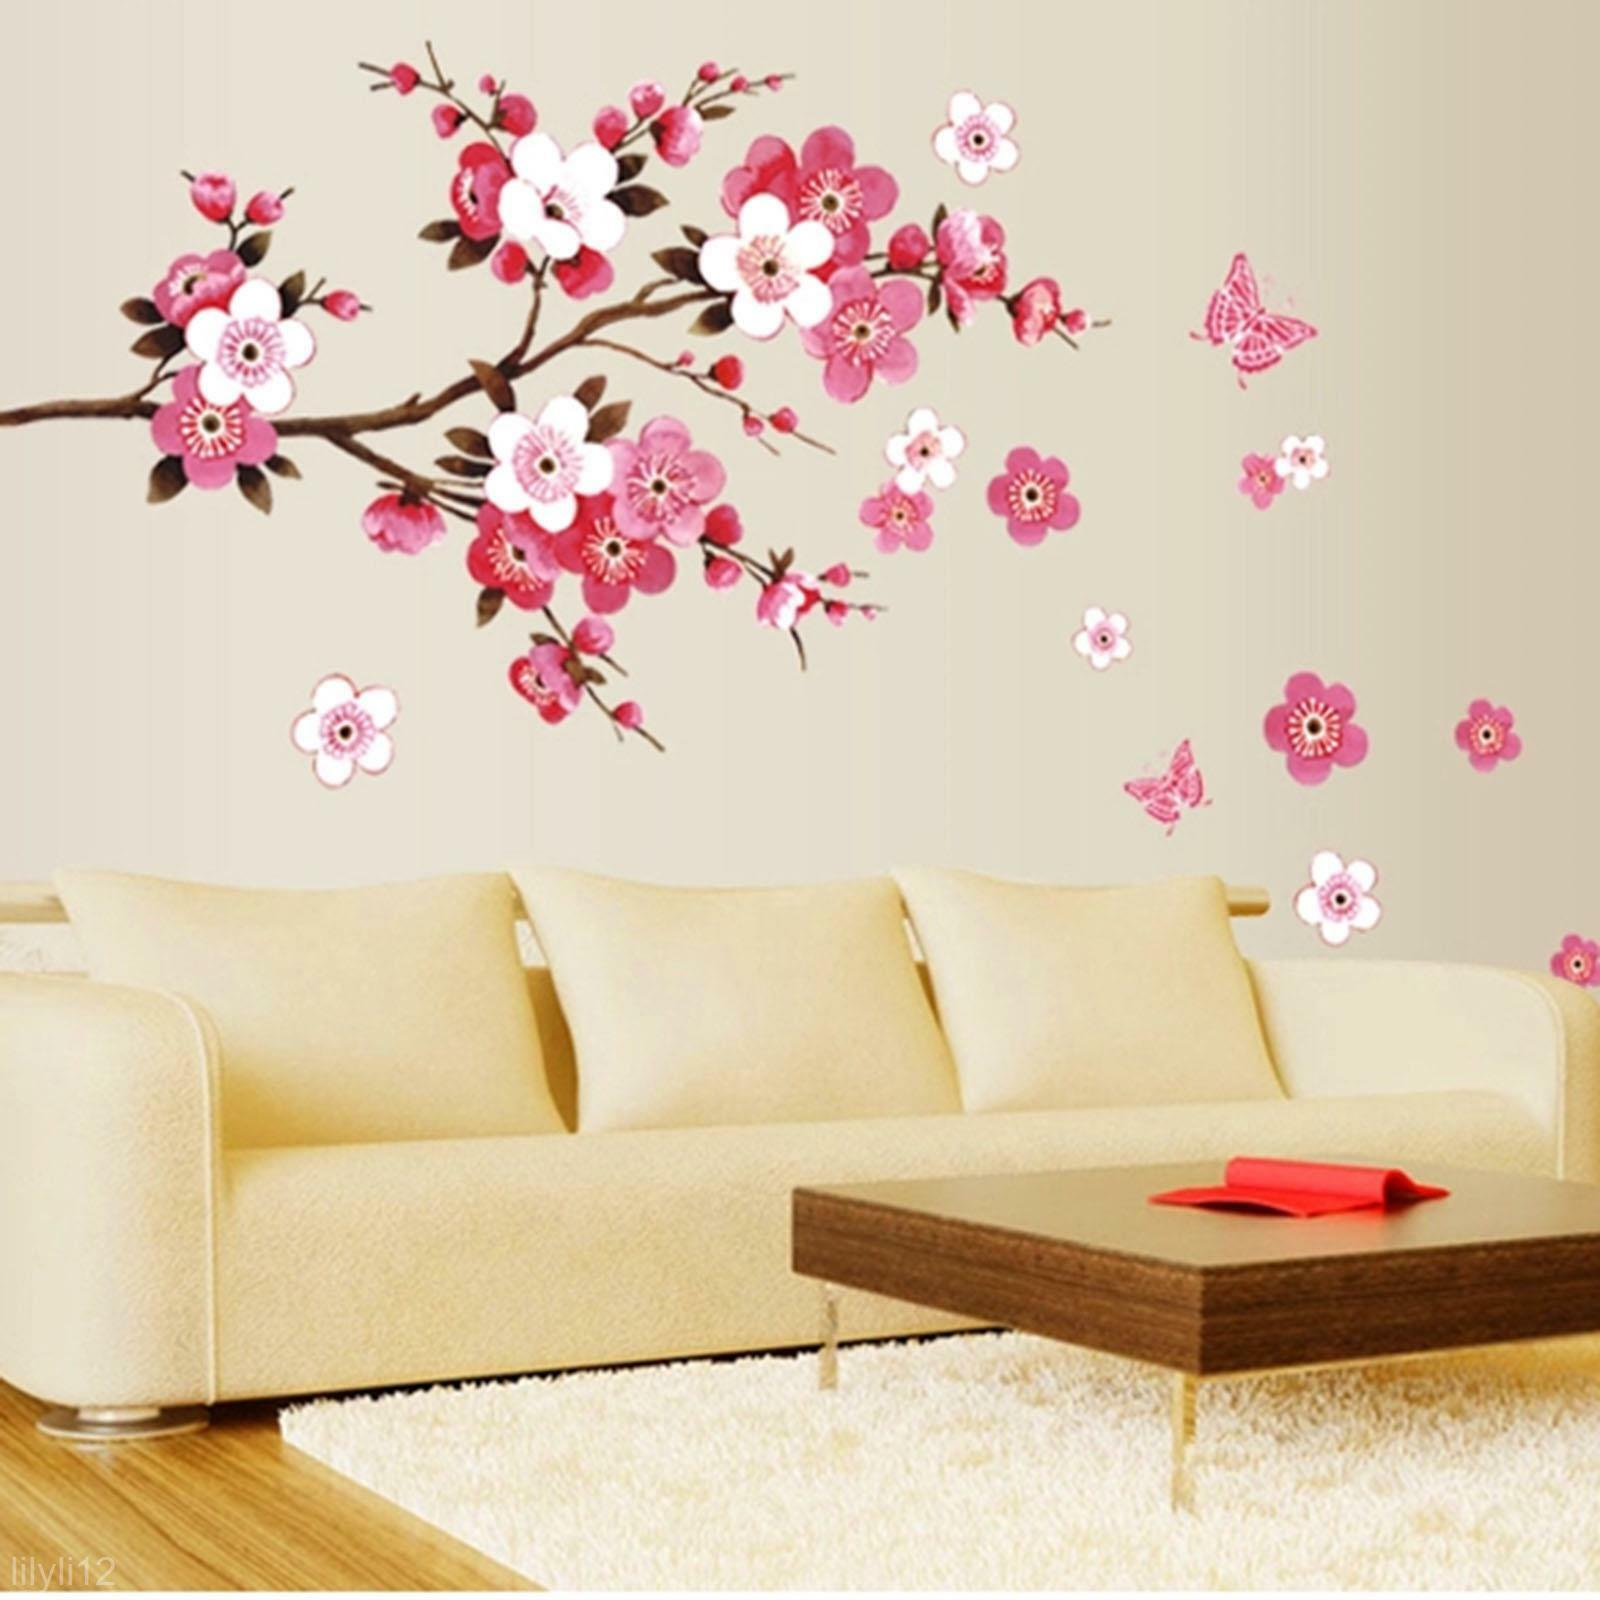 New Room Peach Blossom Flower Butterfly Wall Sticker Vinyl